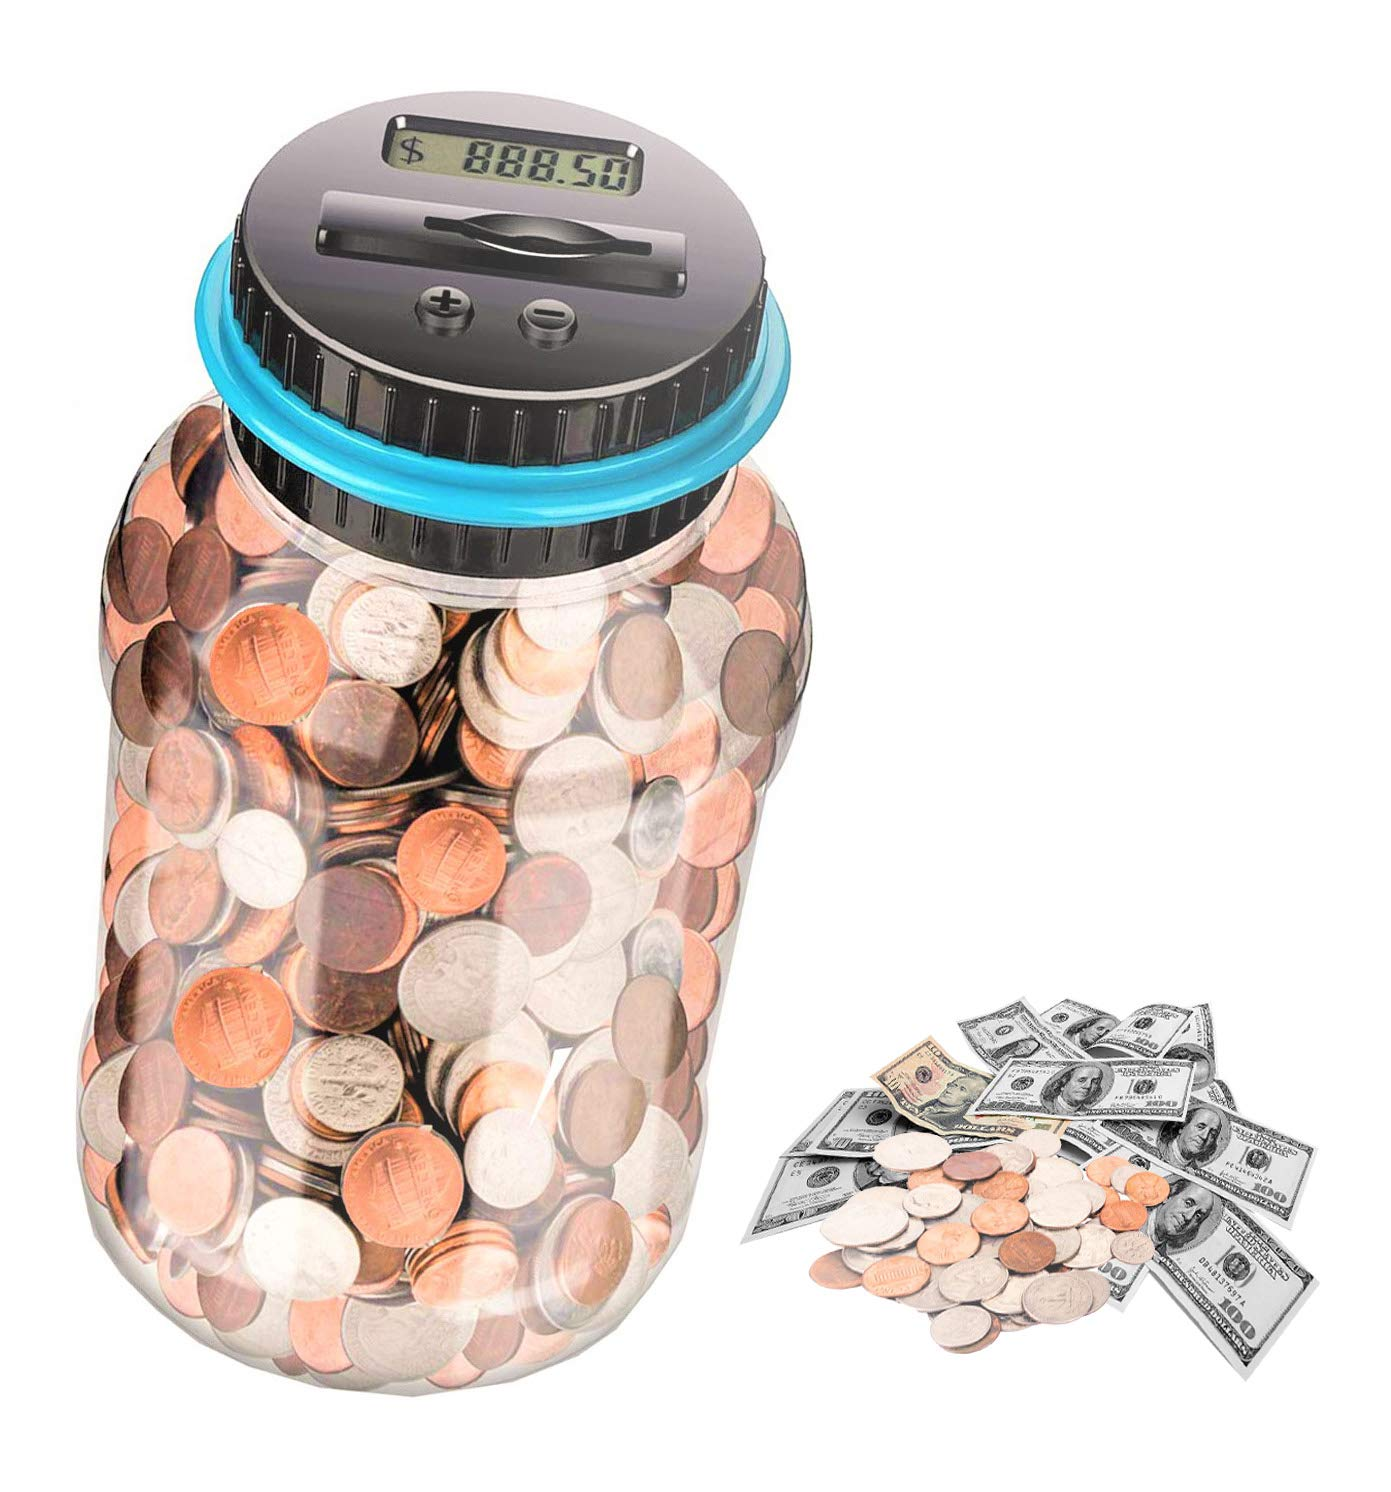 Birthday Boys and Girls as Gift on Christmas New Years day Not Included Powered by Battery Simple Auto Counting Money Box for Kids and Adults Digital Coin Bank Clear LCD Large Piggy Bank